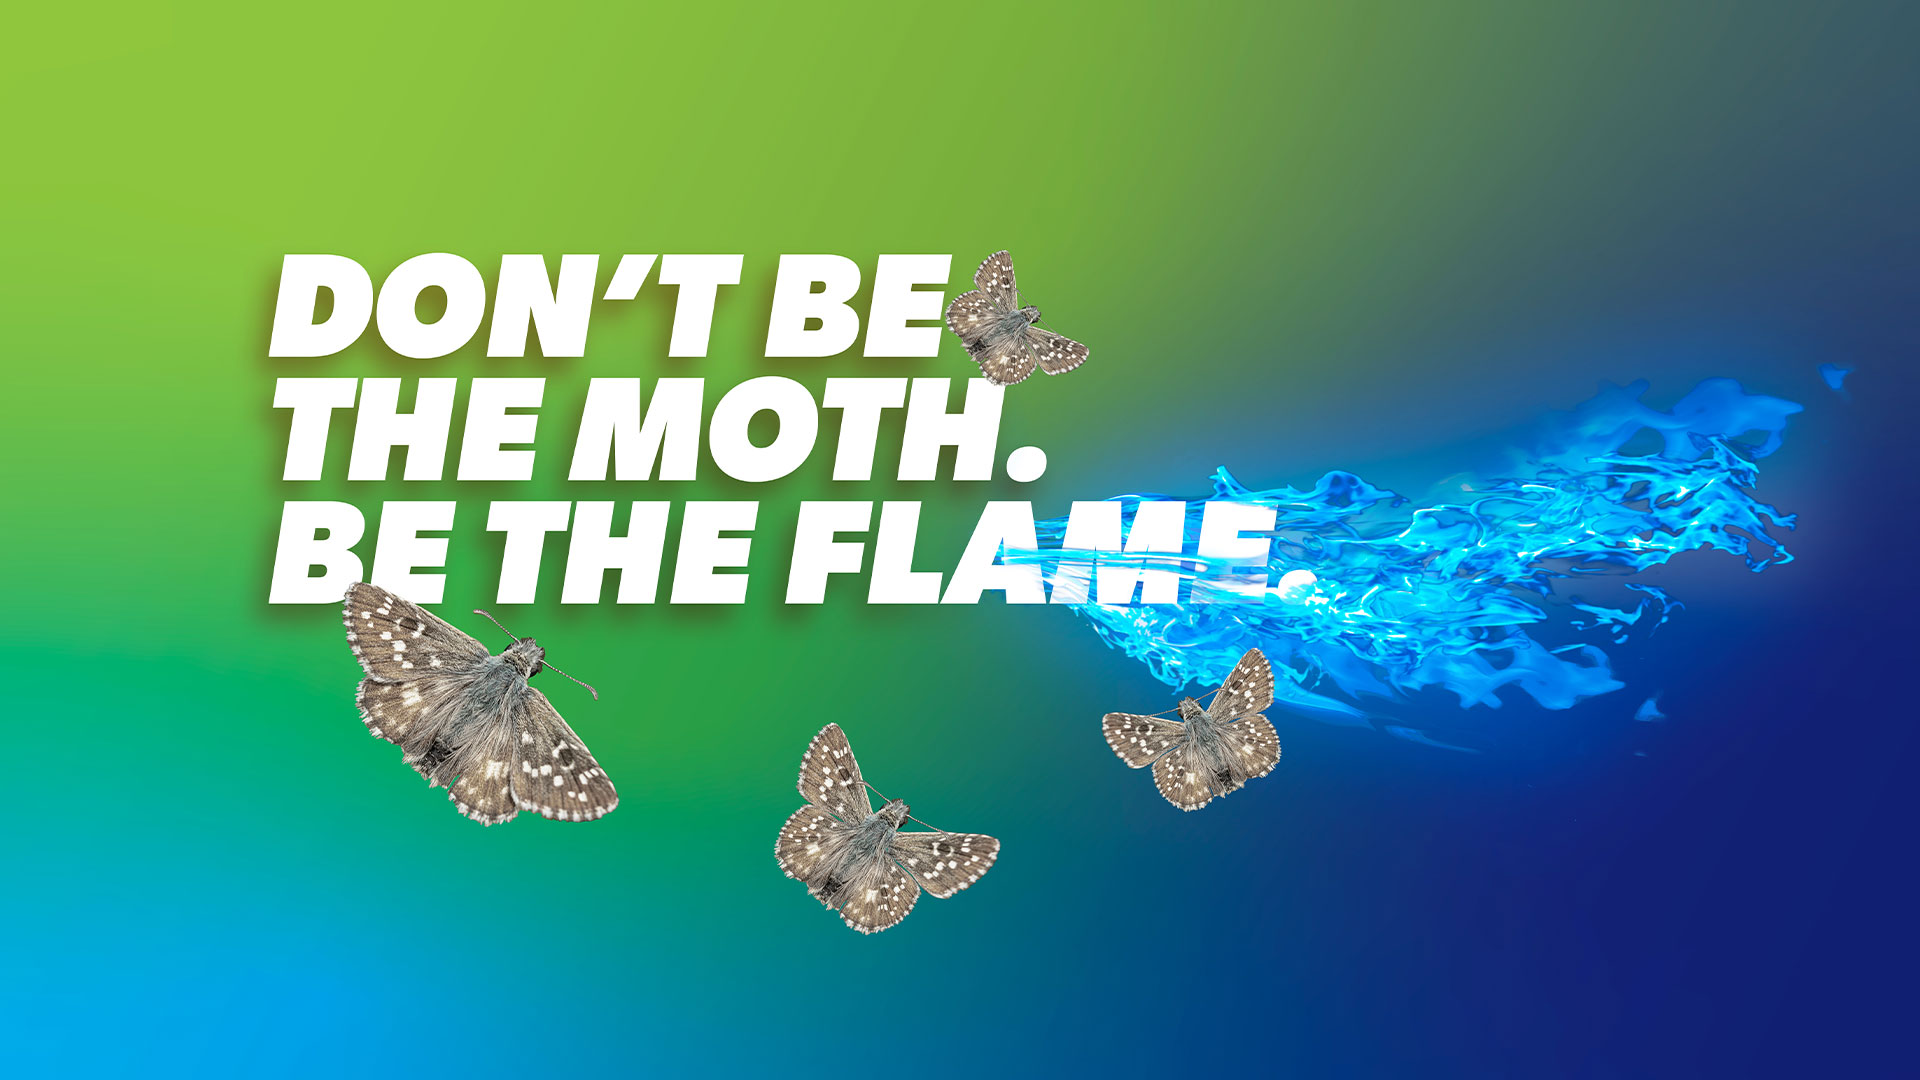 Don't Be the Moth Be the Flame.